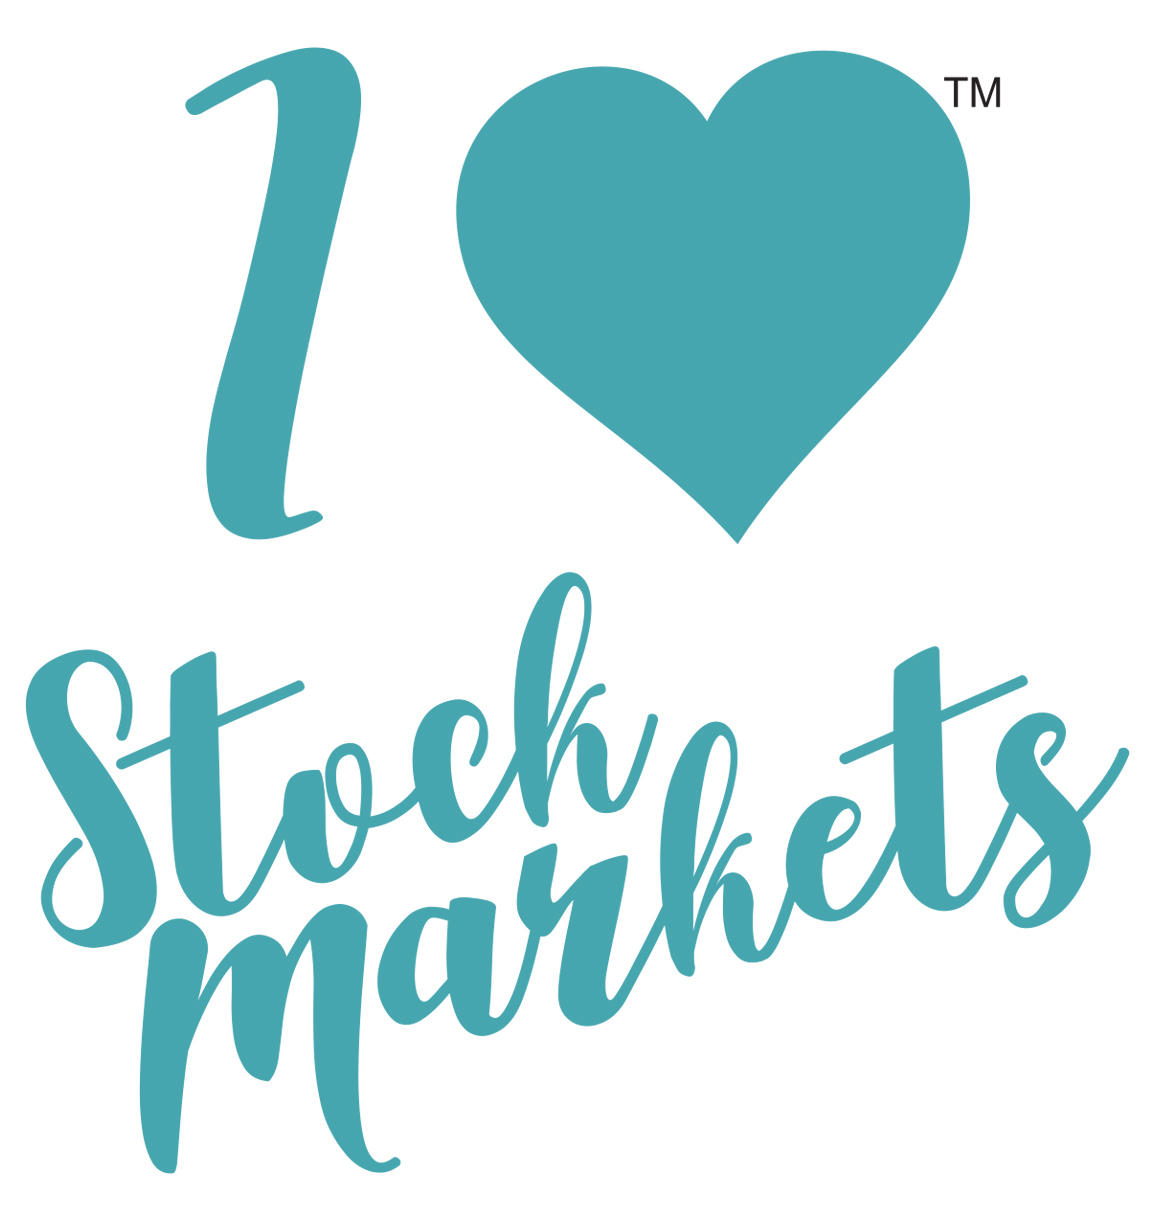 I Love Stock Market - BBF